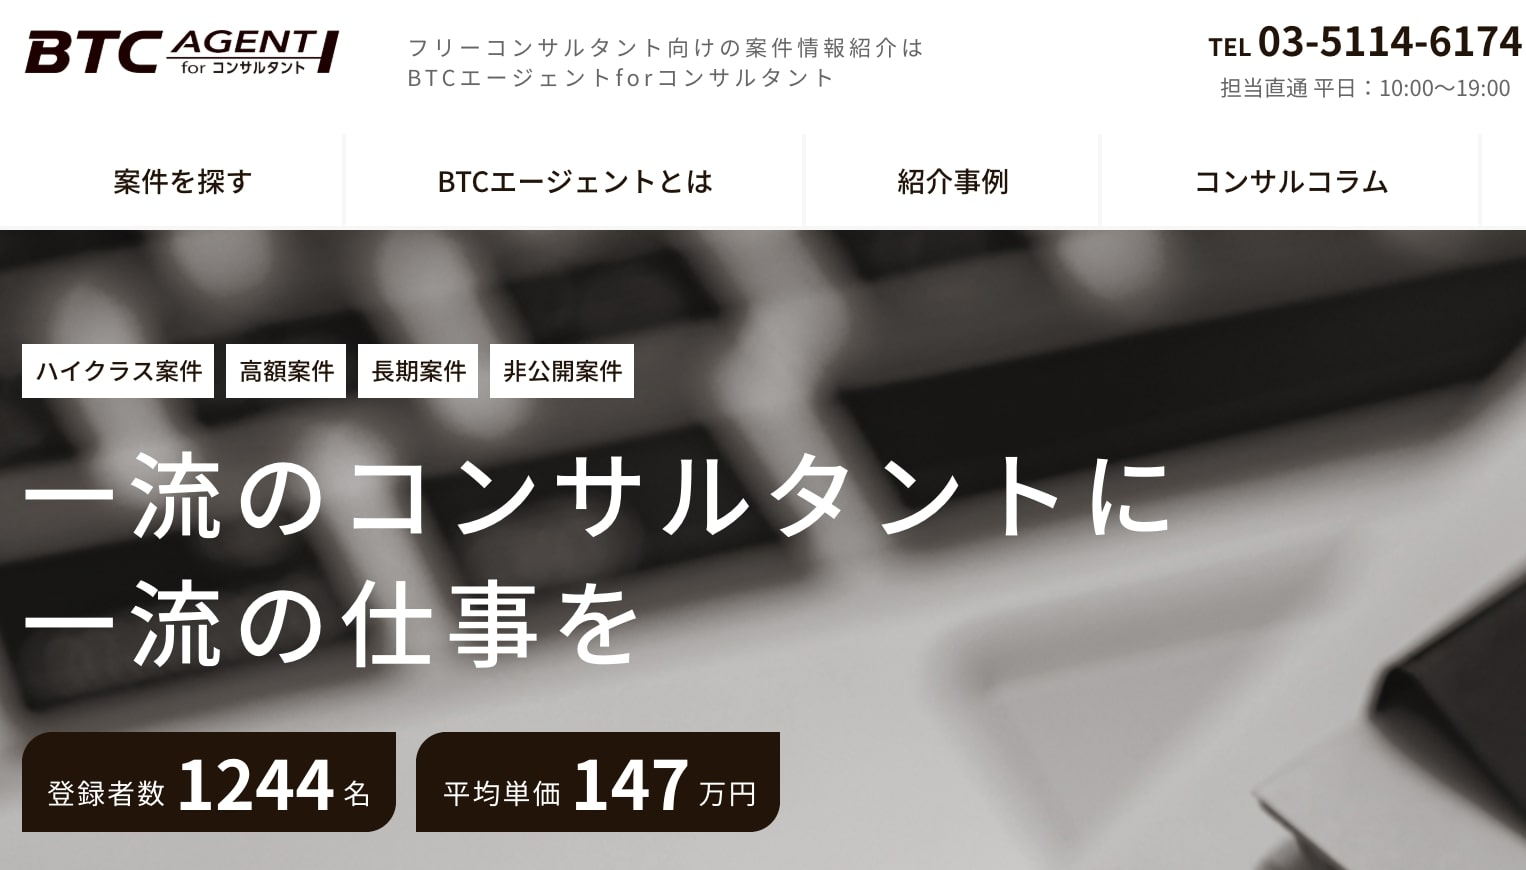 BTCエージェントforフリーコンサルタント